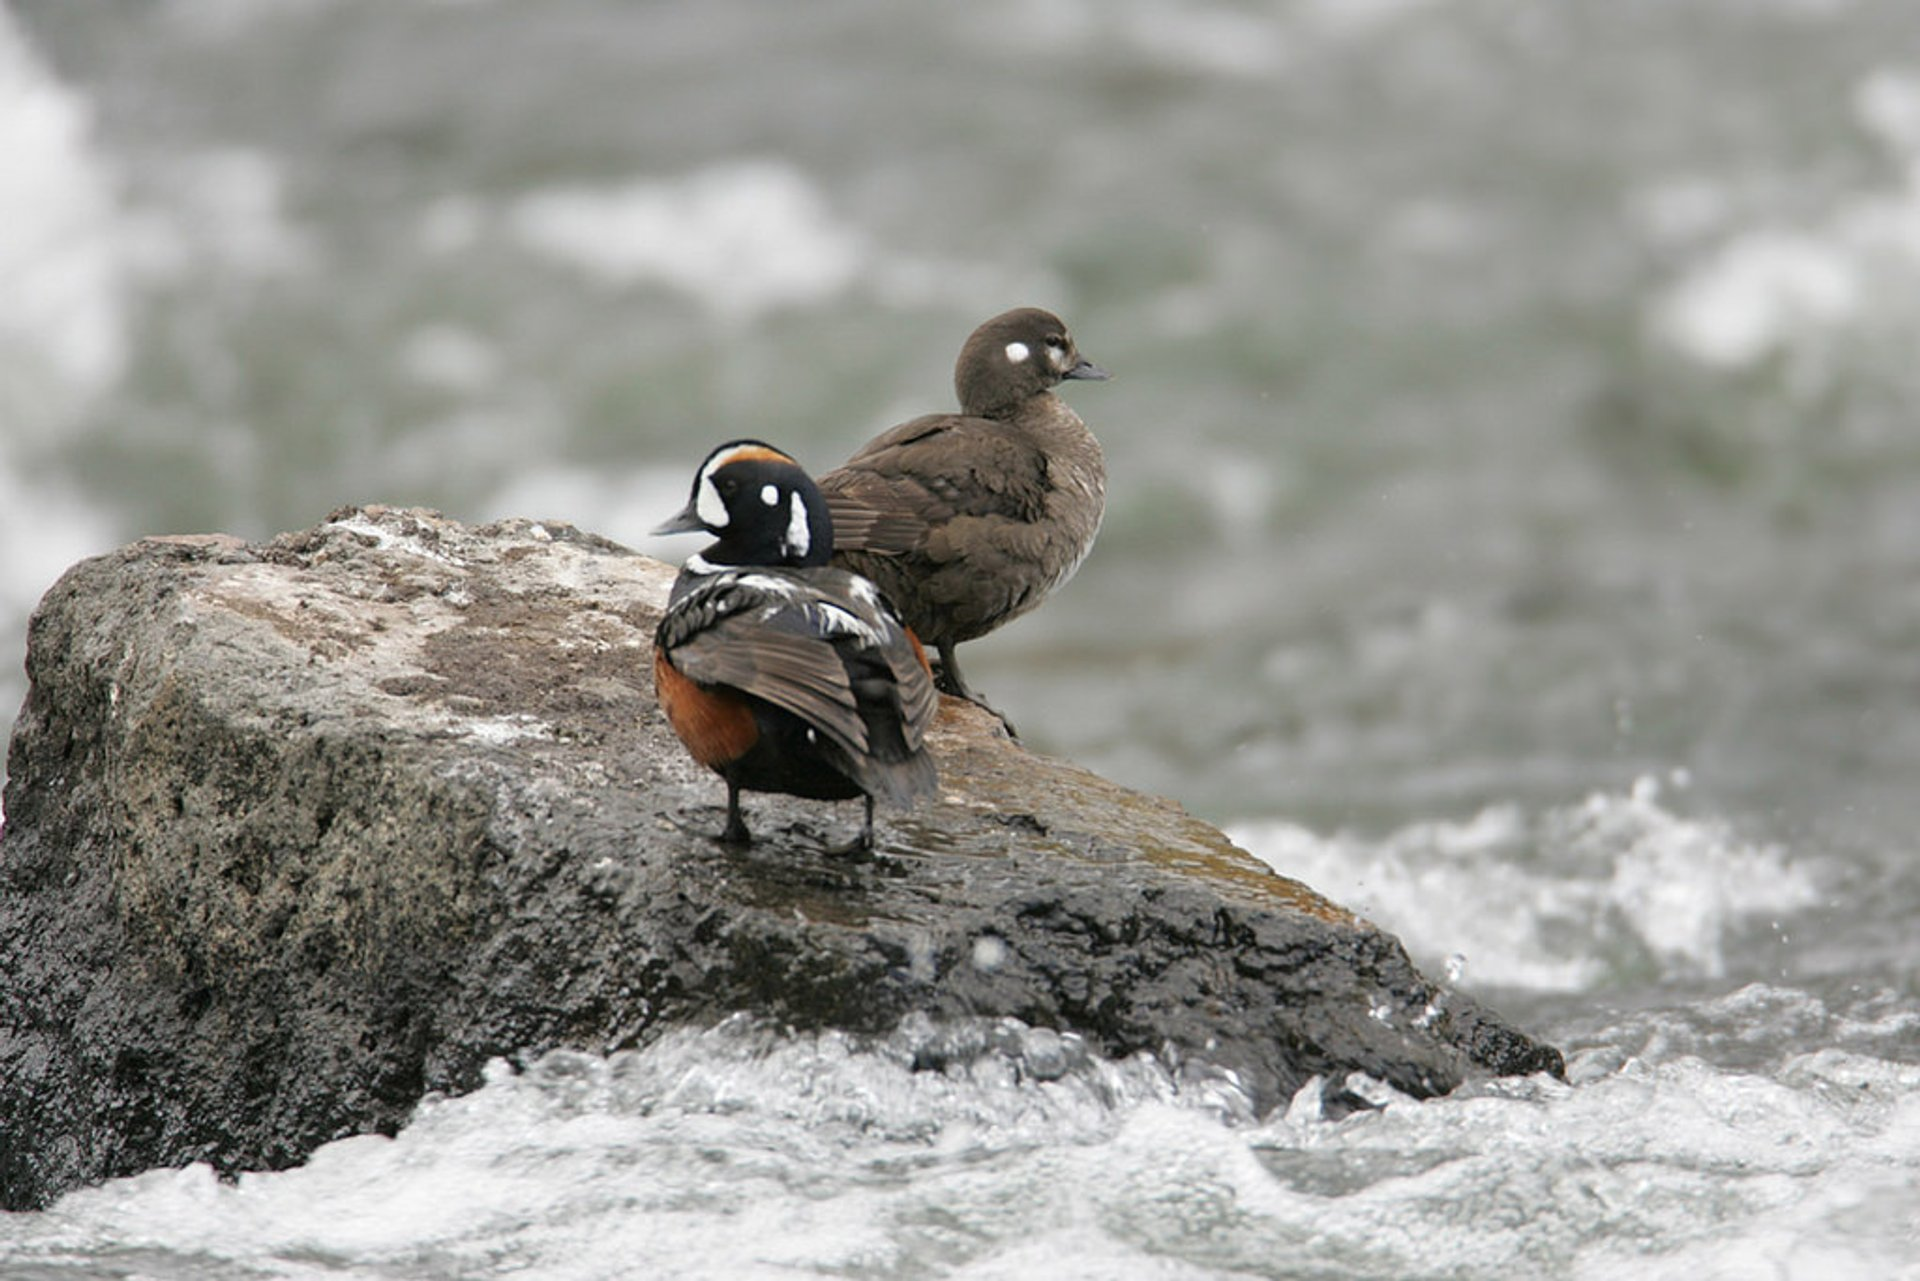 Male and female Harlequin ducks 2019